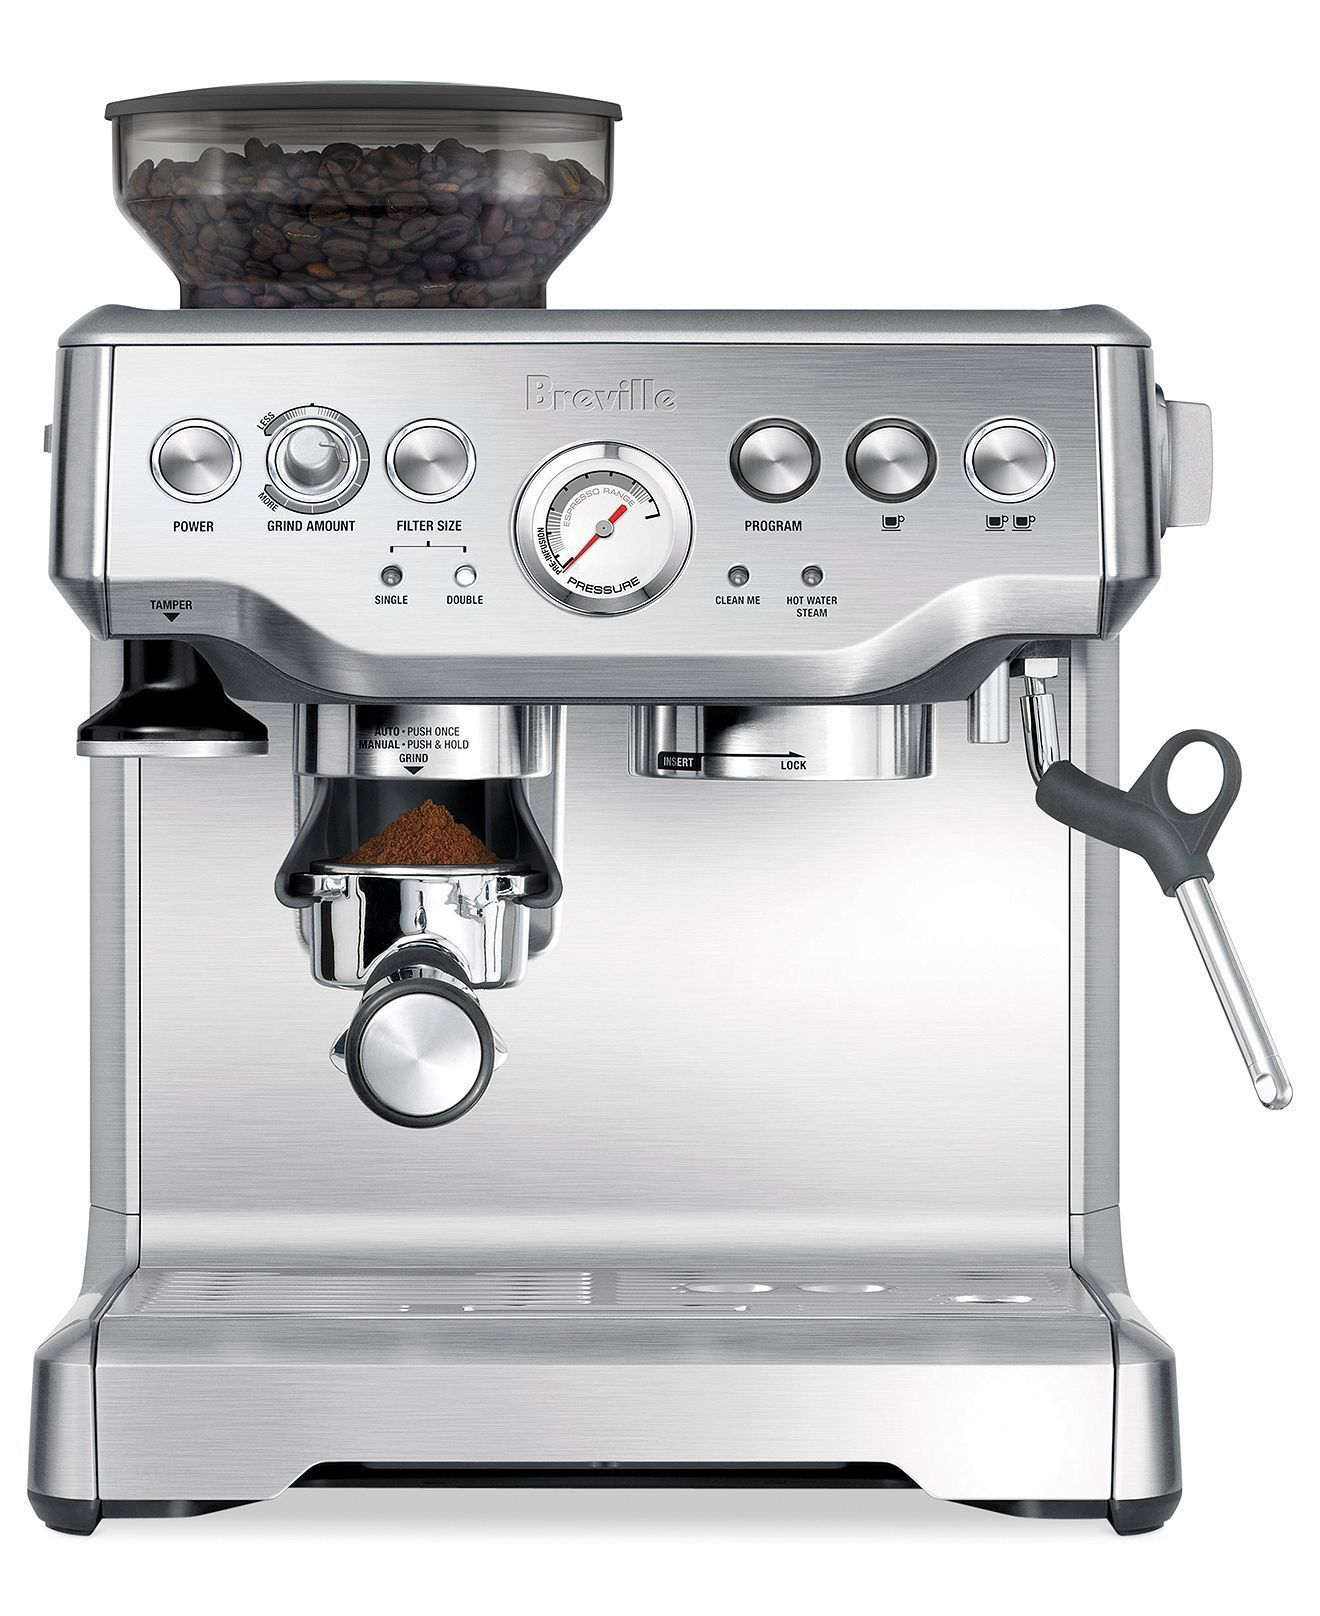 Breville Bes870xl Barista Express Espresso Maker Review In 2020 Coffee Machine Home Coffee Stations Coffee Maker